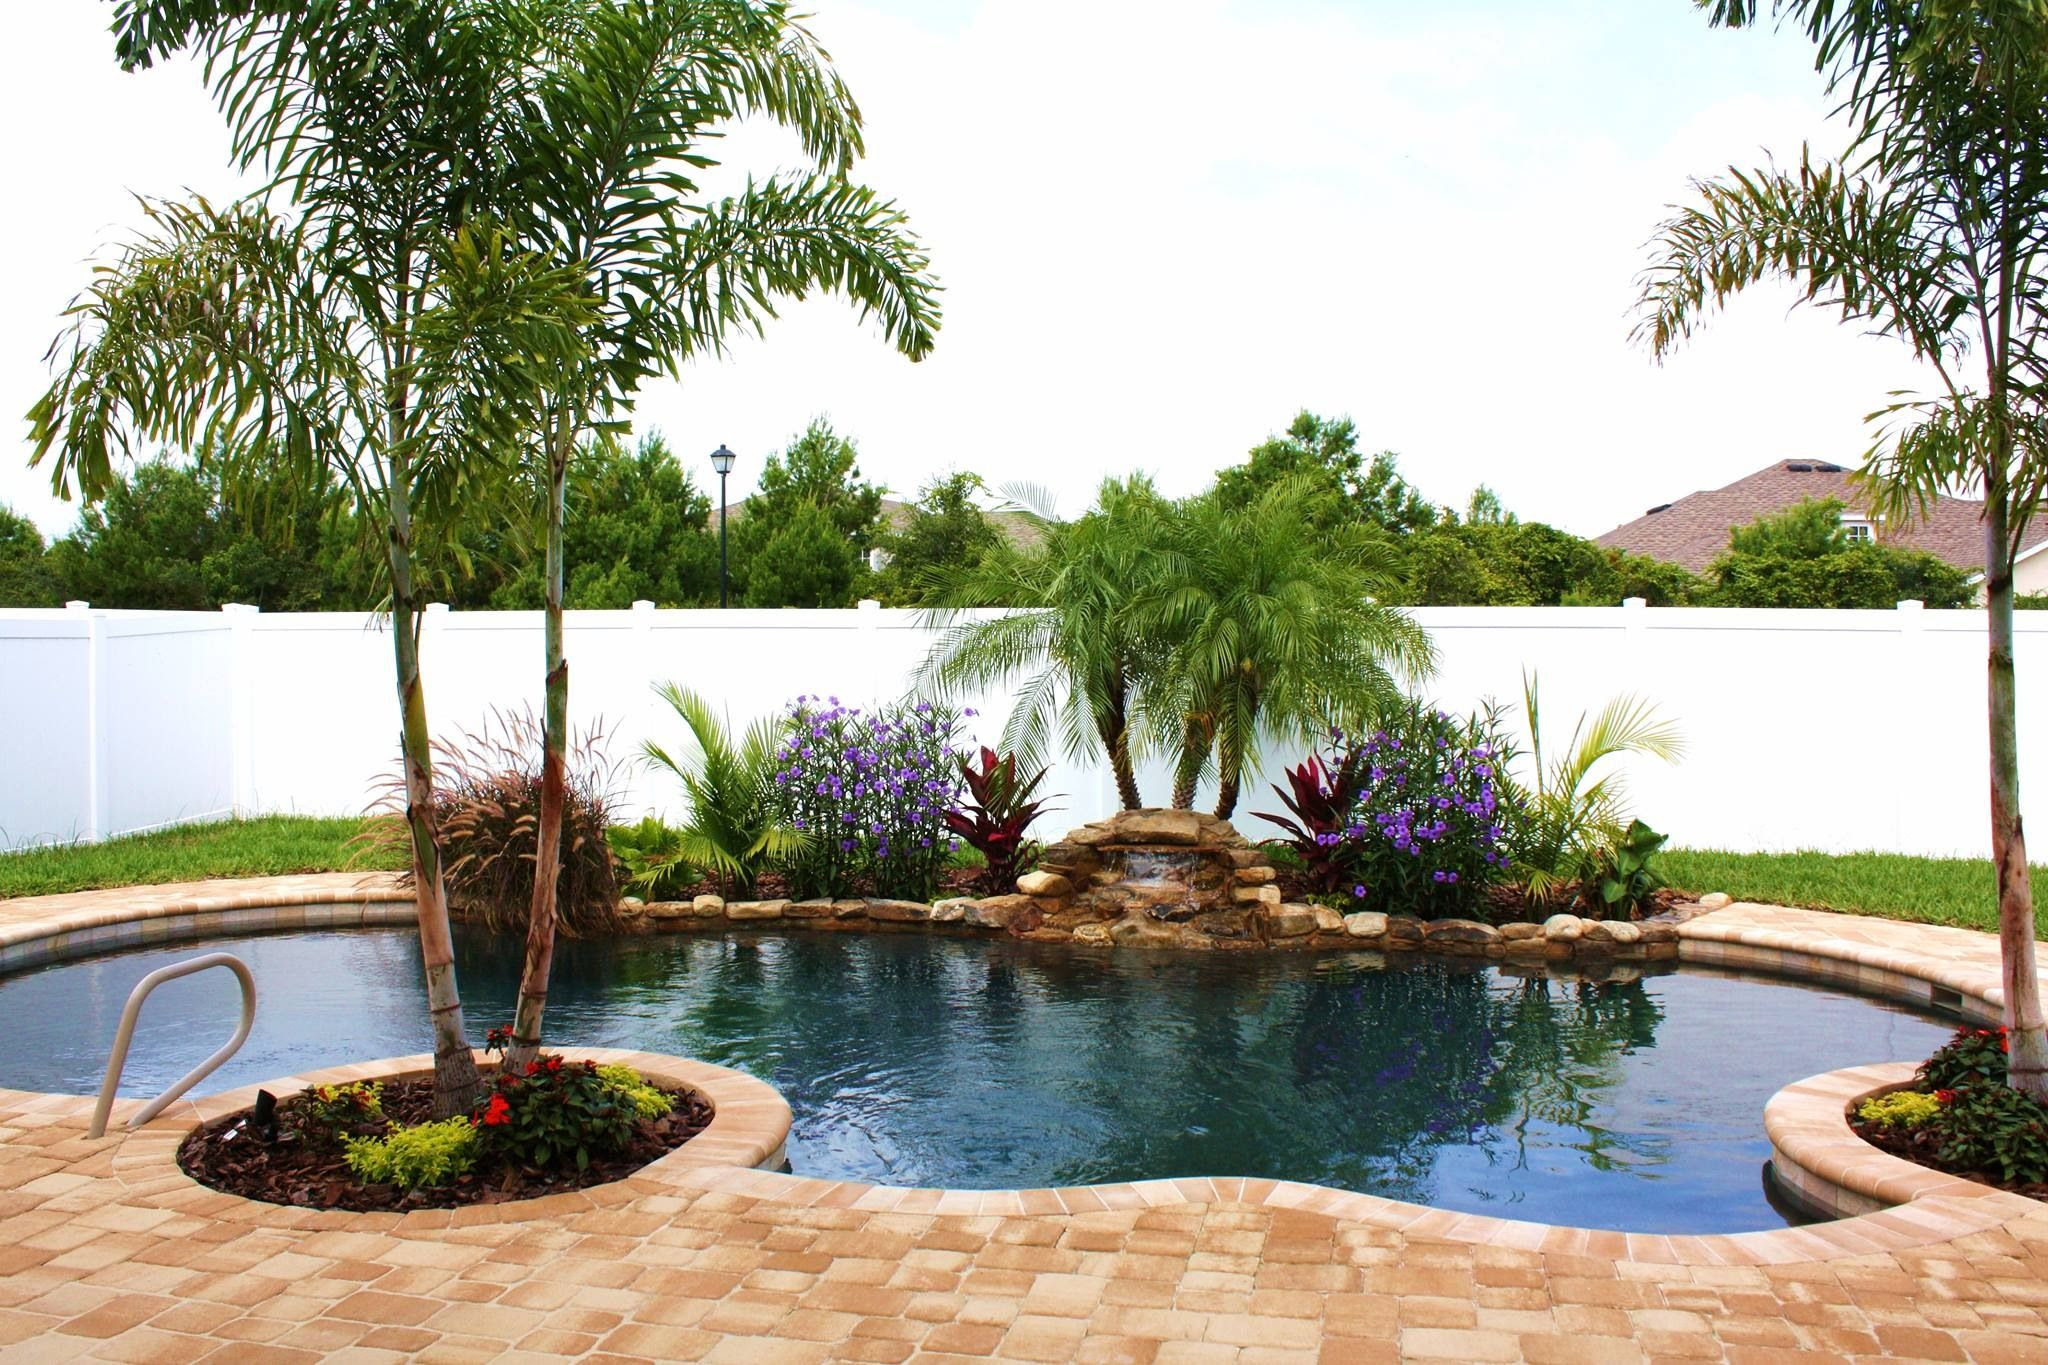 Landscape ideas for small backyard with pool ztil news for Channel 4 garden design ideas